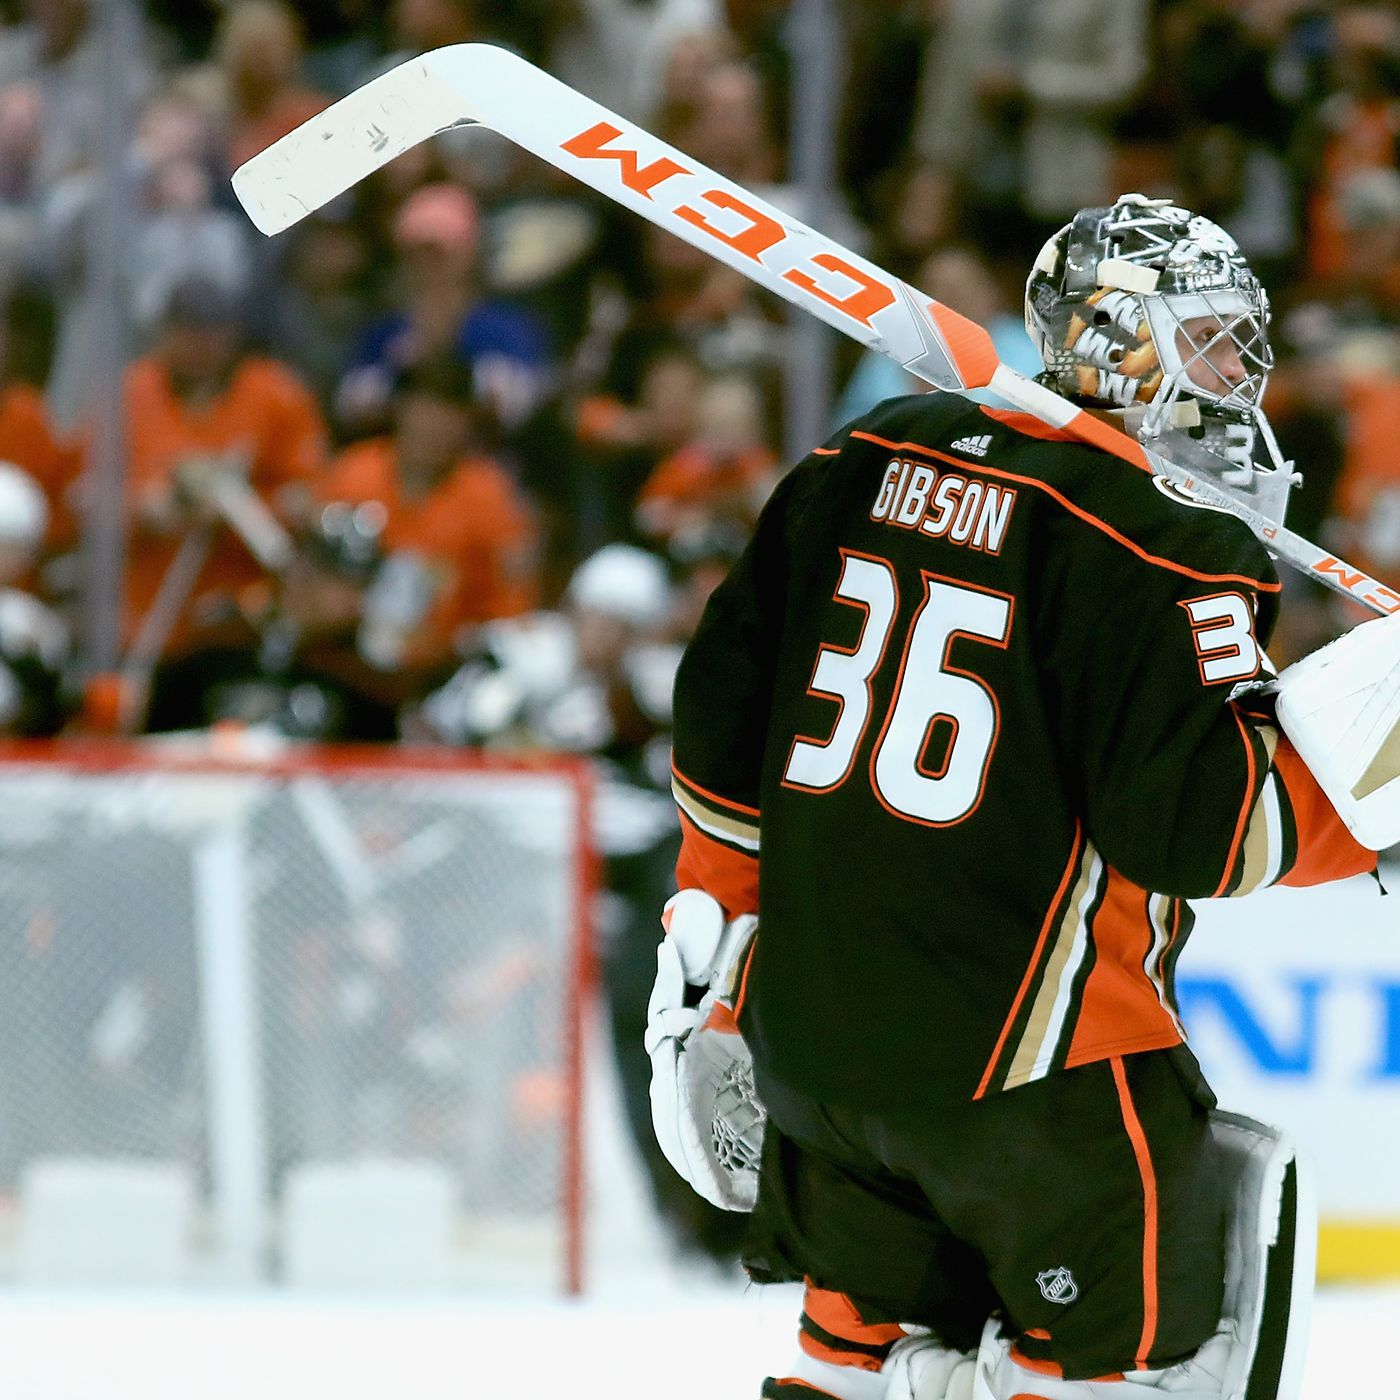 Pacific Division Preview: Anaheim Ducks focused on speed